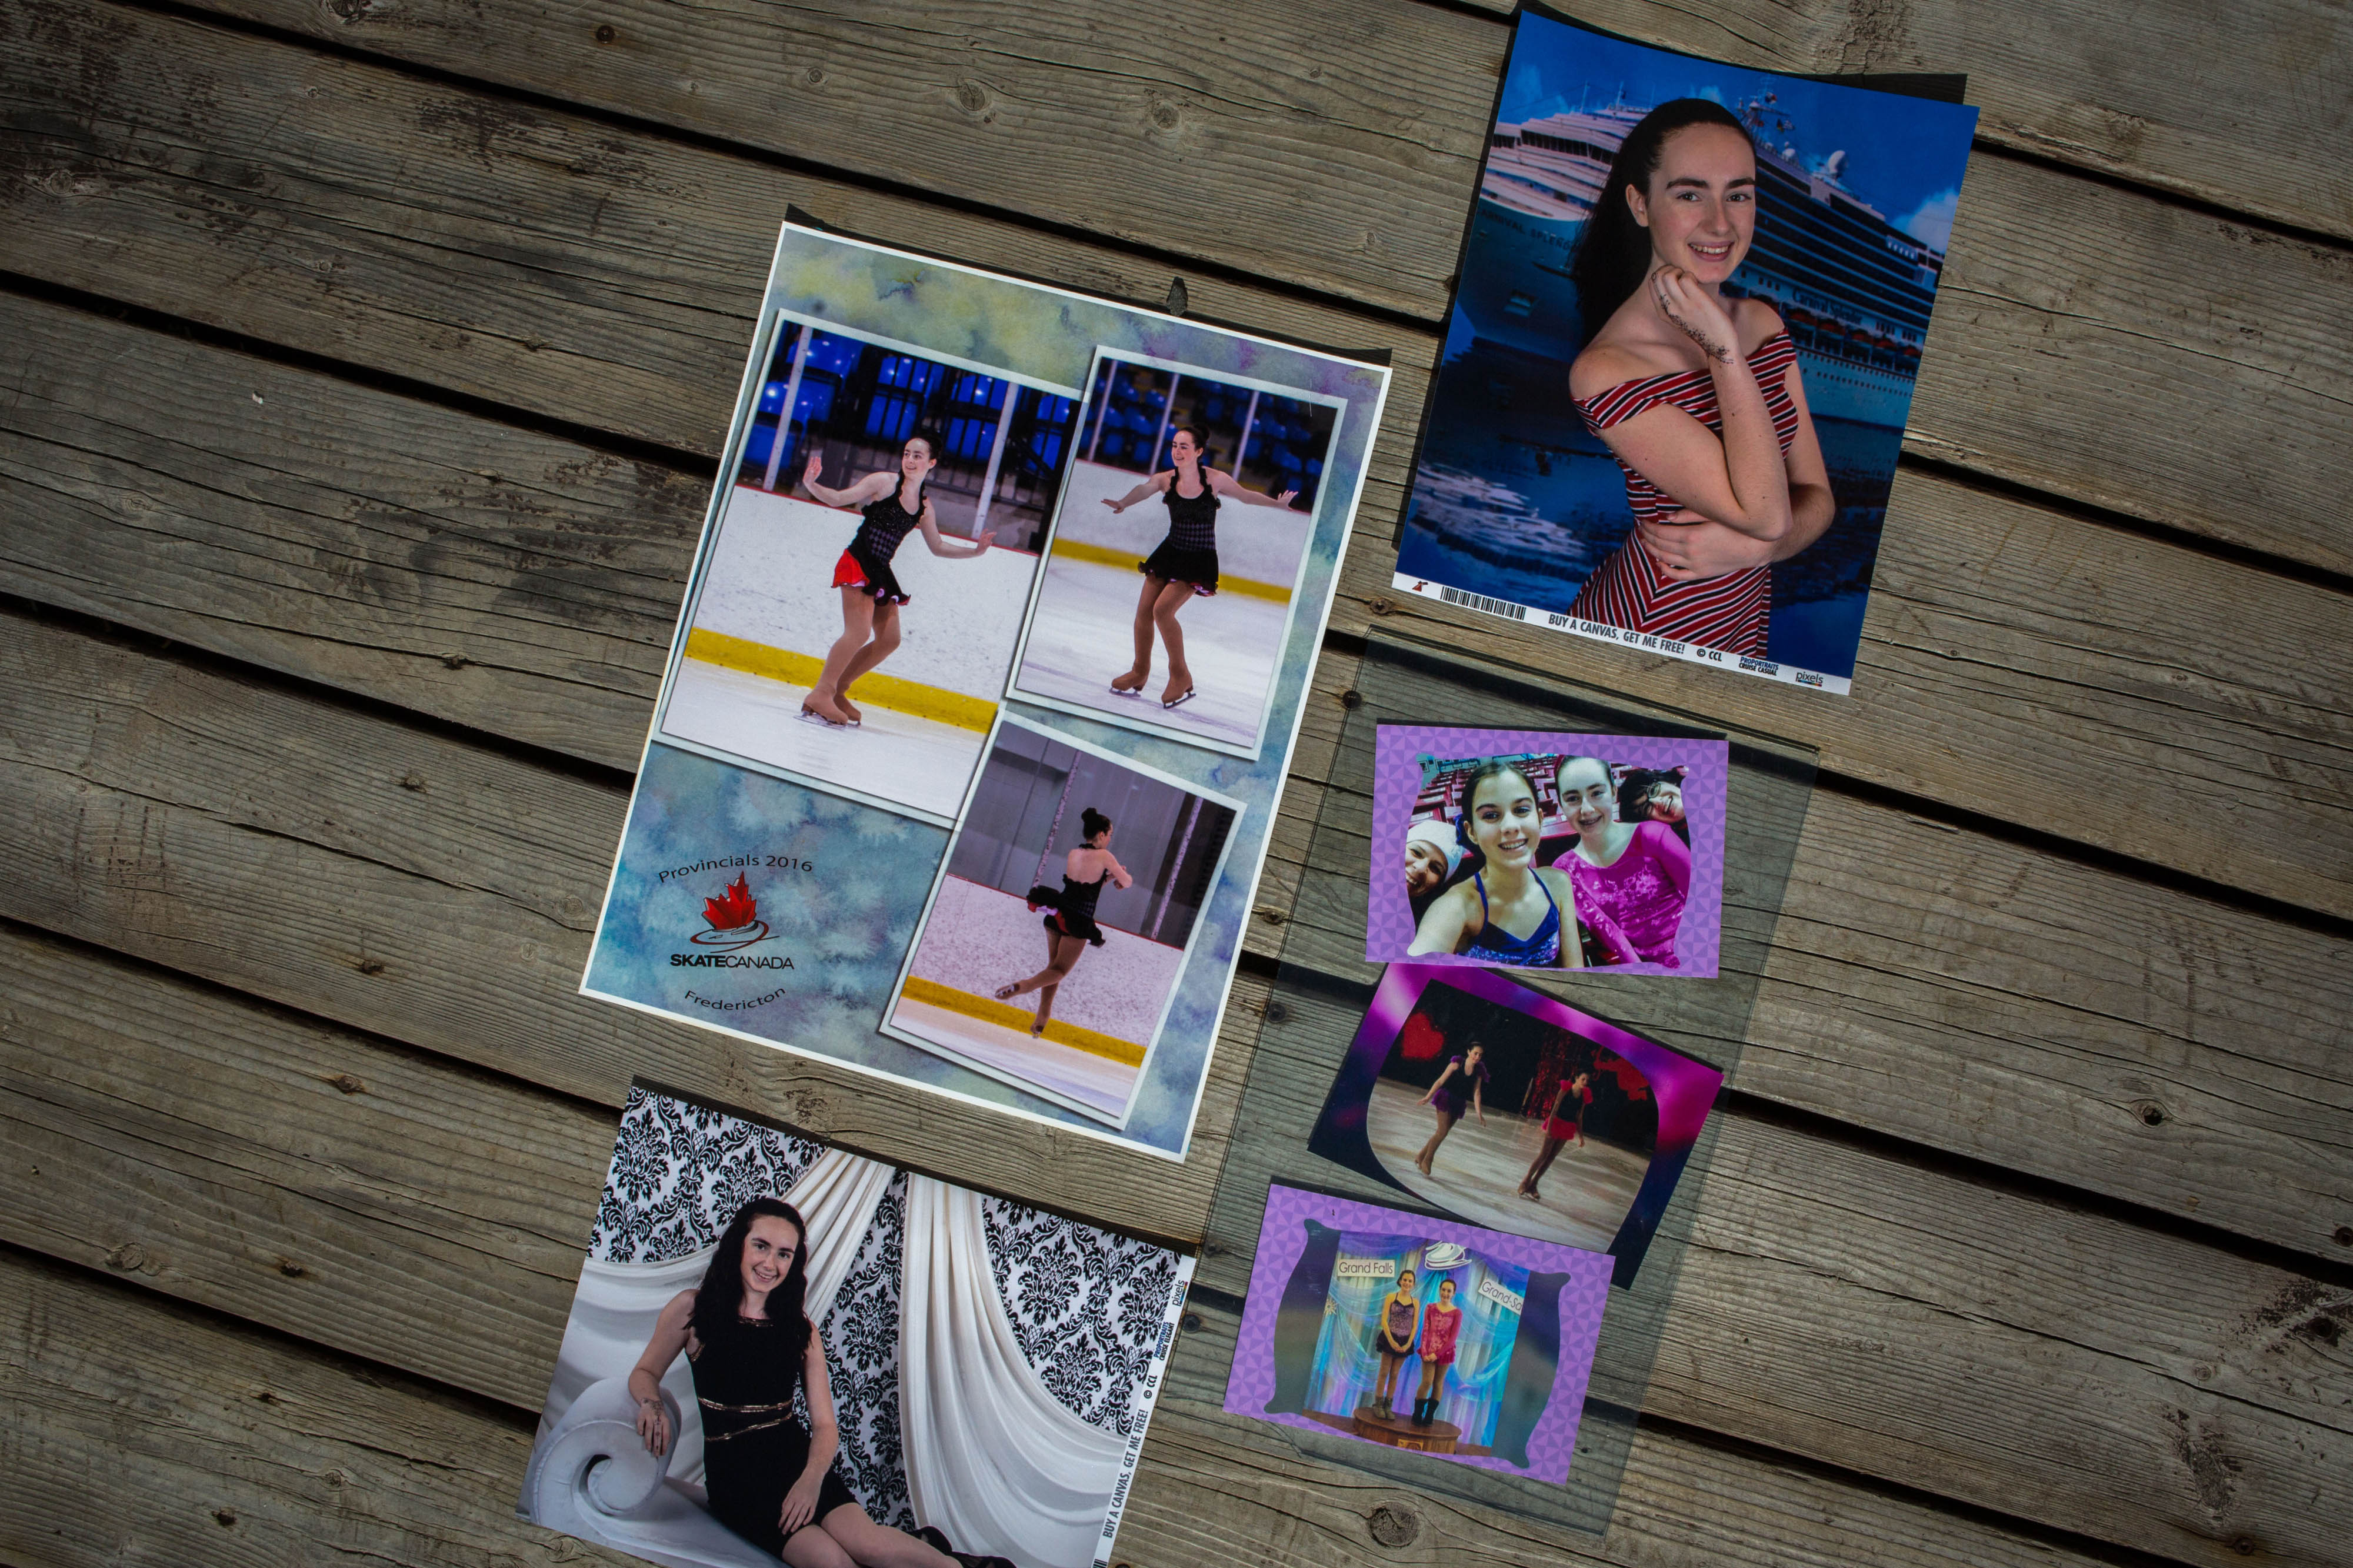 Before Gabrielle Cormier, 20, was diagnosed with a mysterious brain illness, she was an avid figure skater and student at Mount Allison University. She began losing her motor skills before her diagnosis and is now unable to walk without a cane, often losing her balance. (Photograph by Chris Donovan)